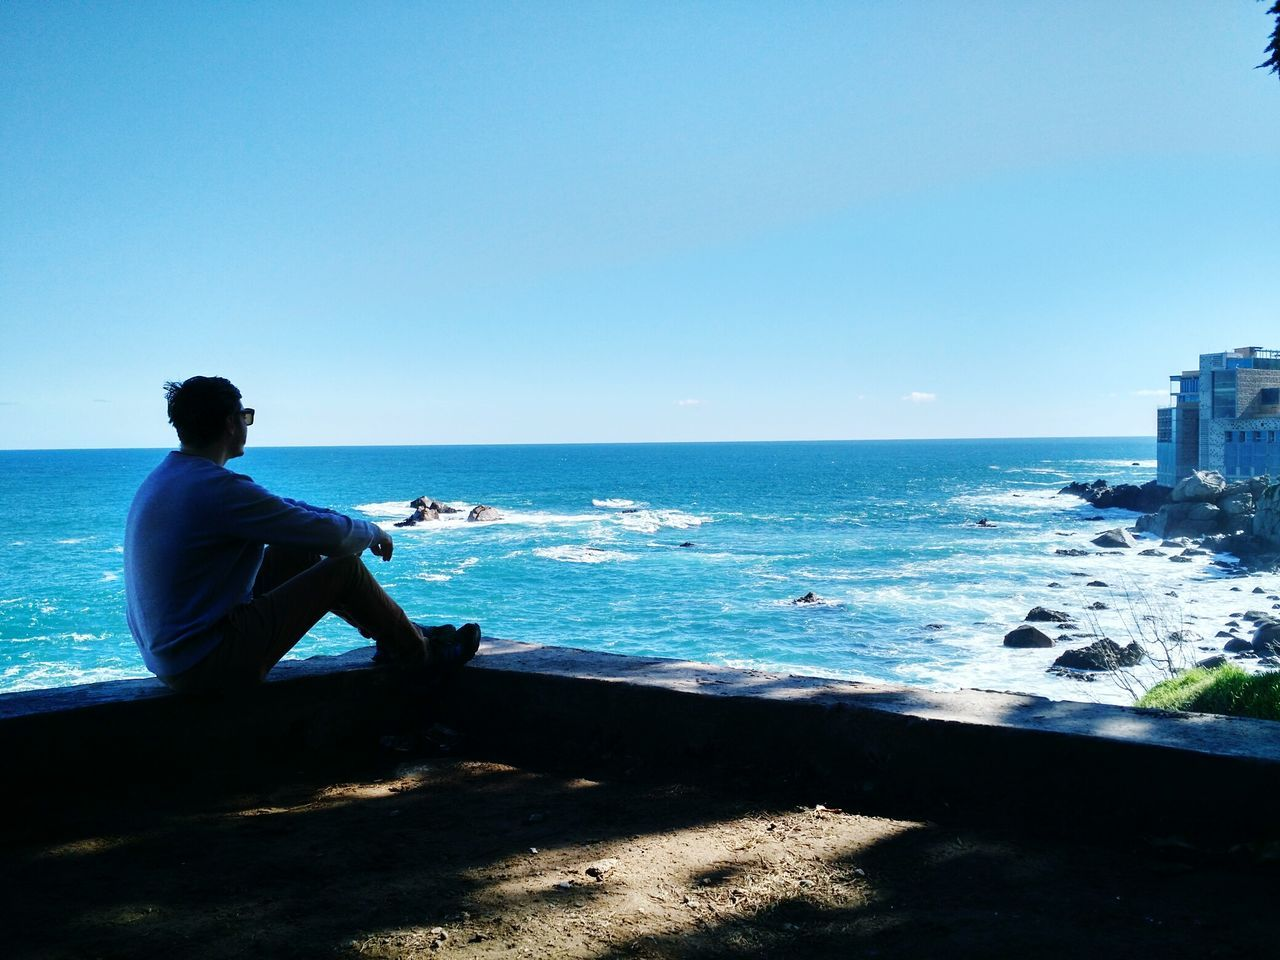 sea, horizon over water, clear sky, blue, one person, water, real people, sitting, nature, beach, beauty in nature, full length, scenics, lifestyles, sky, men, day, outdoors, people